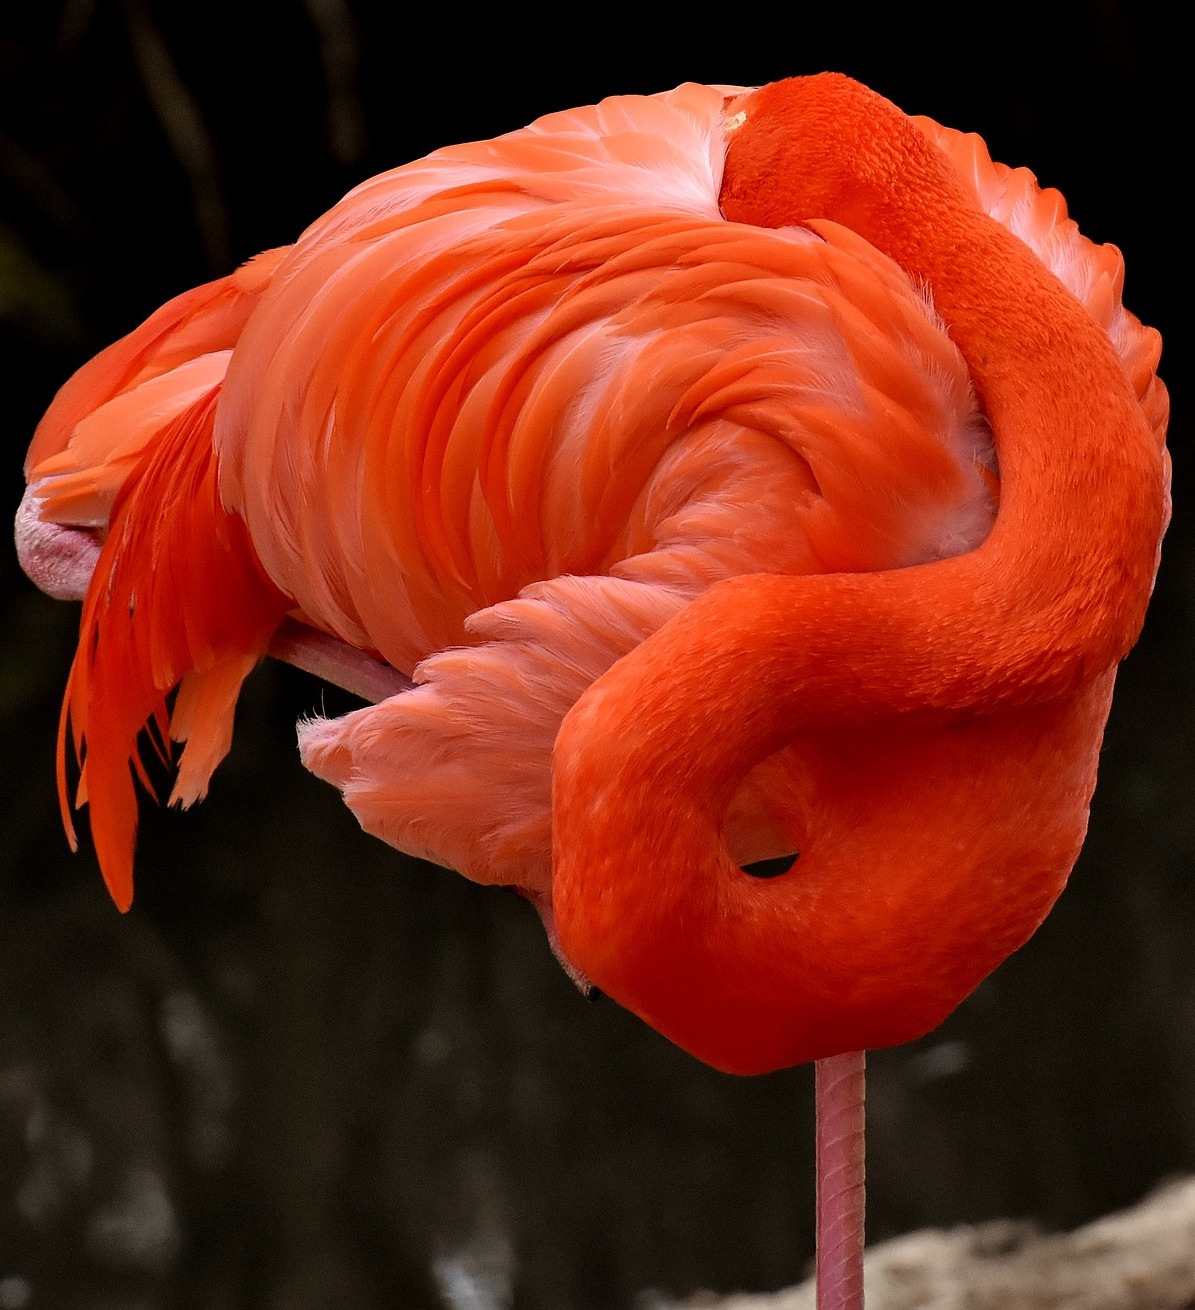 Picture of a flamingo in a poise of self embrace.